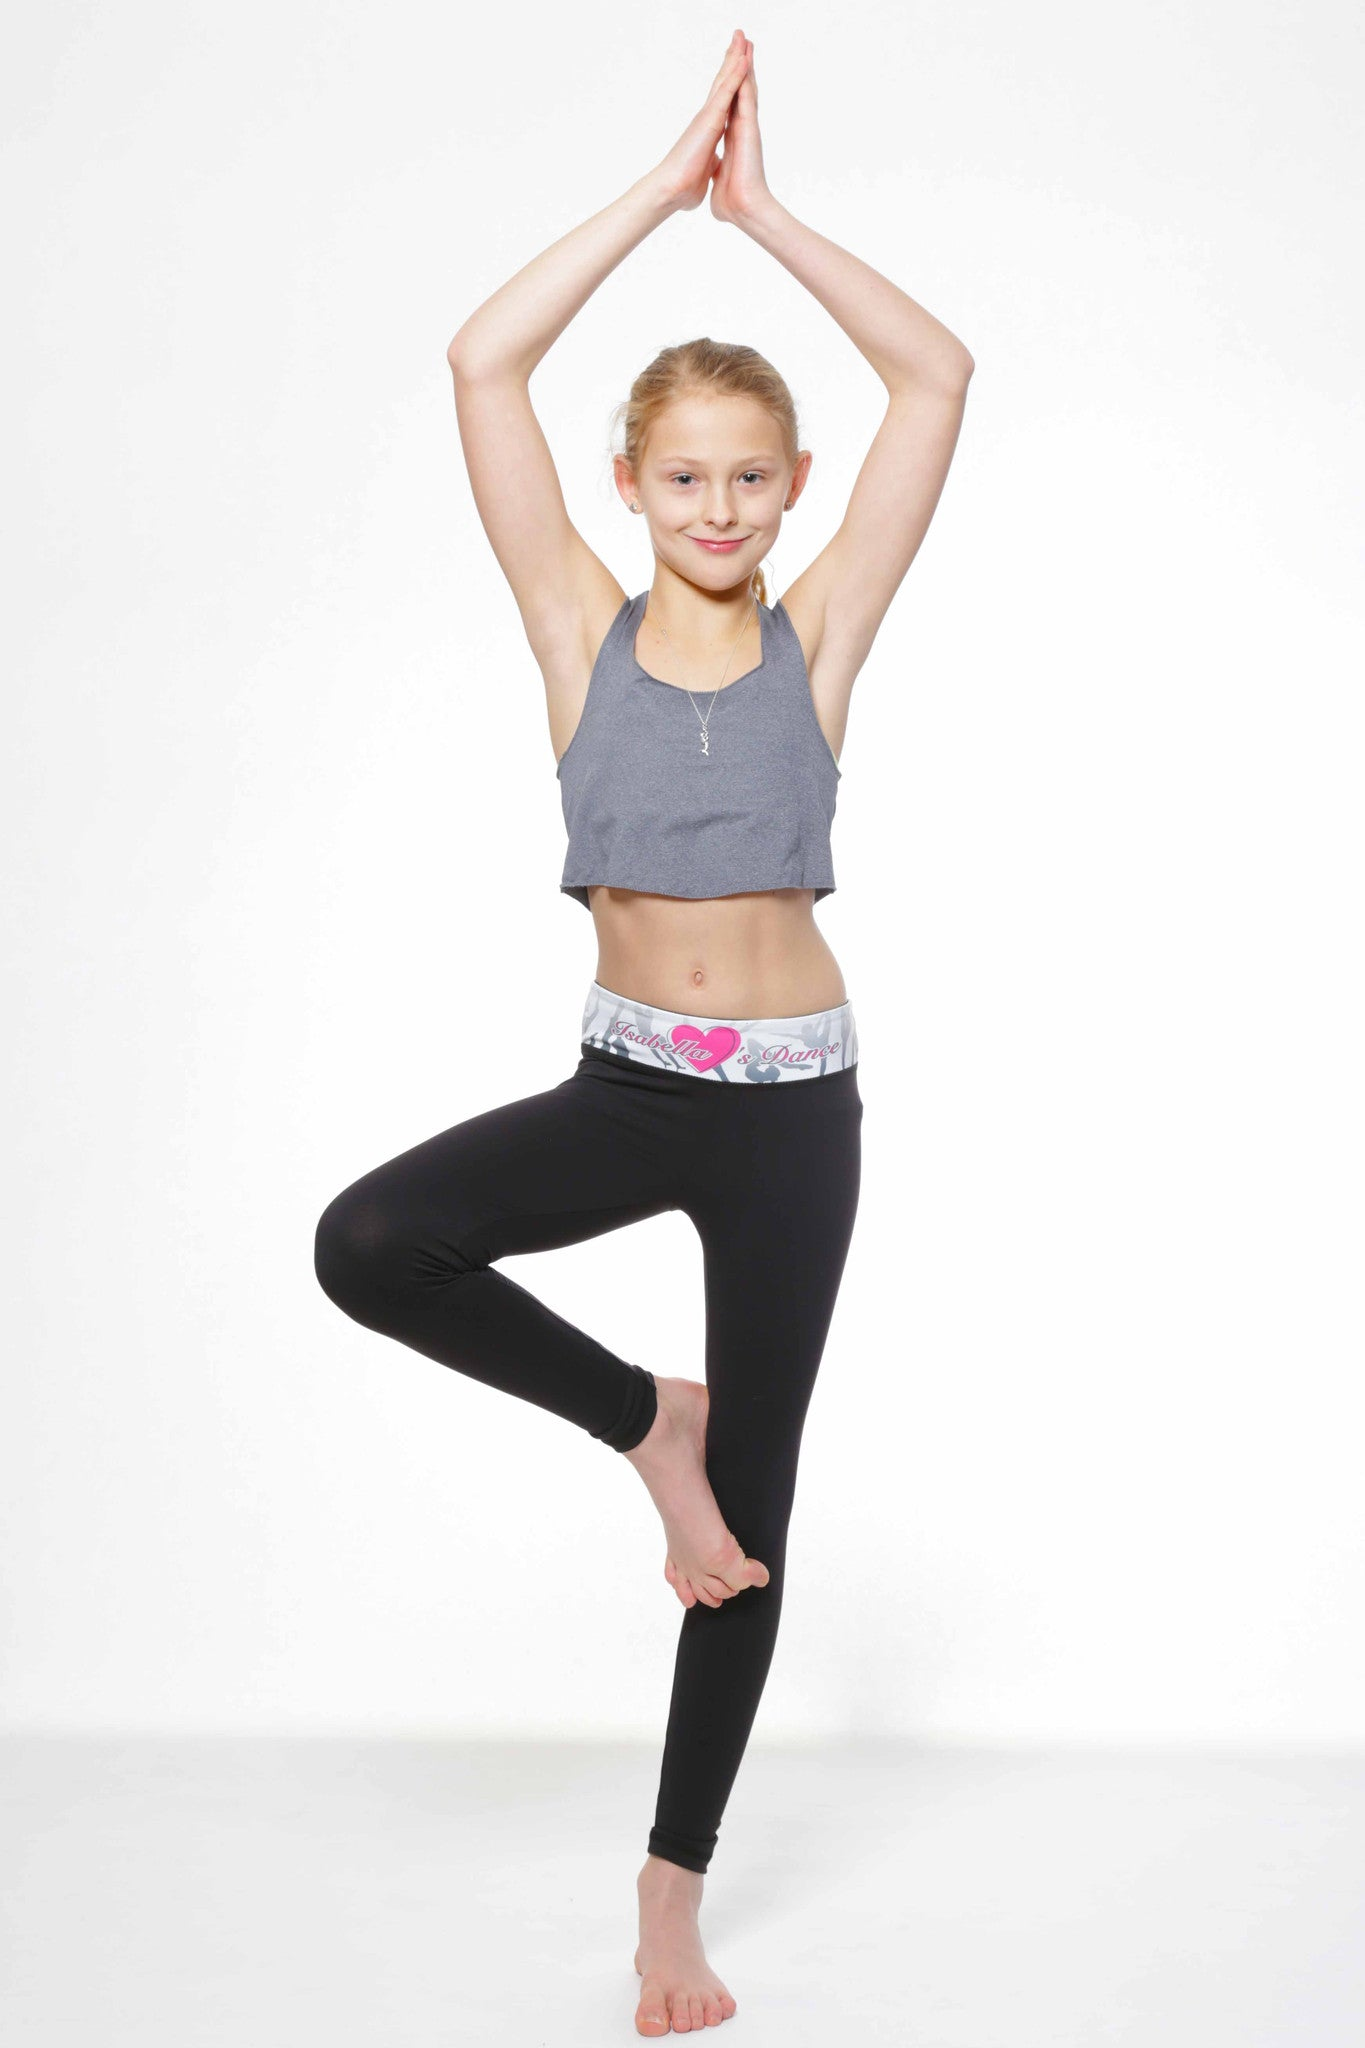 Shop for girls' sports leggings at s2w6s5q3to.gq Next day delivery and free returns available. s of products online. Buy girls' leggings now!